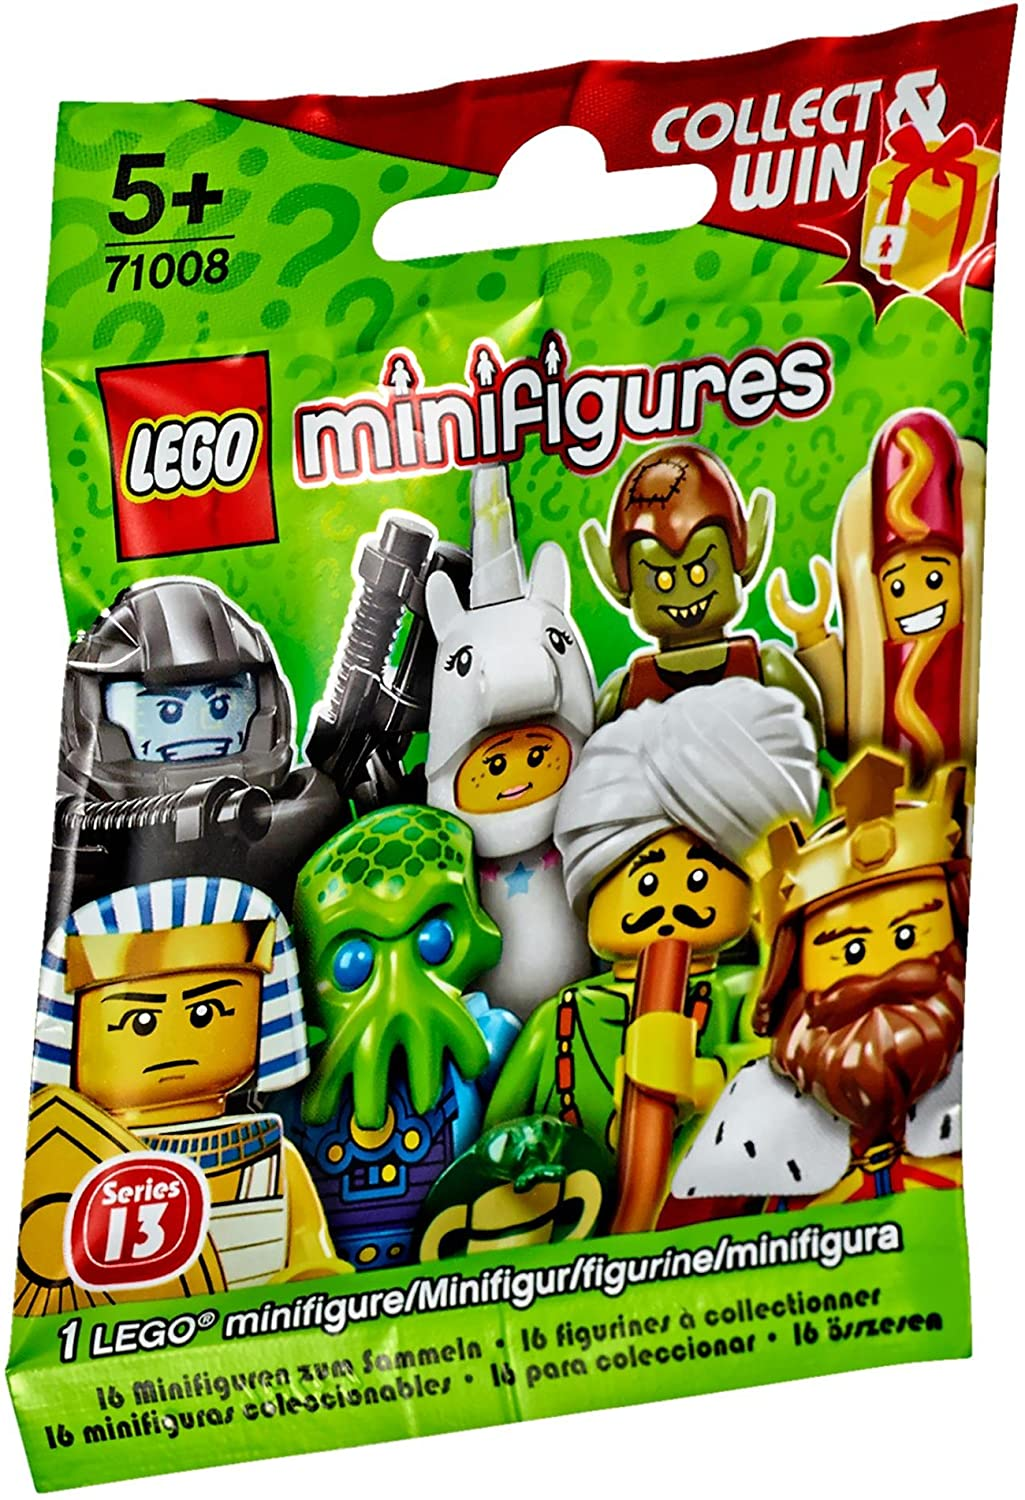 Complete Set of 16 New in Pkg LEGO Series 13 Minifigures 71008